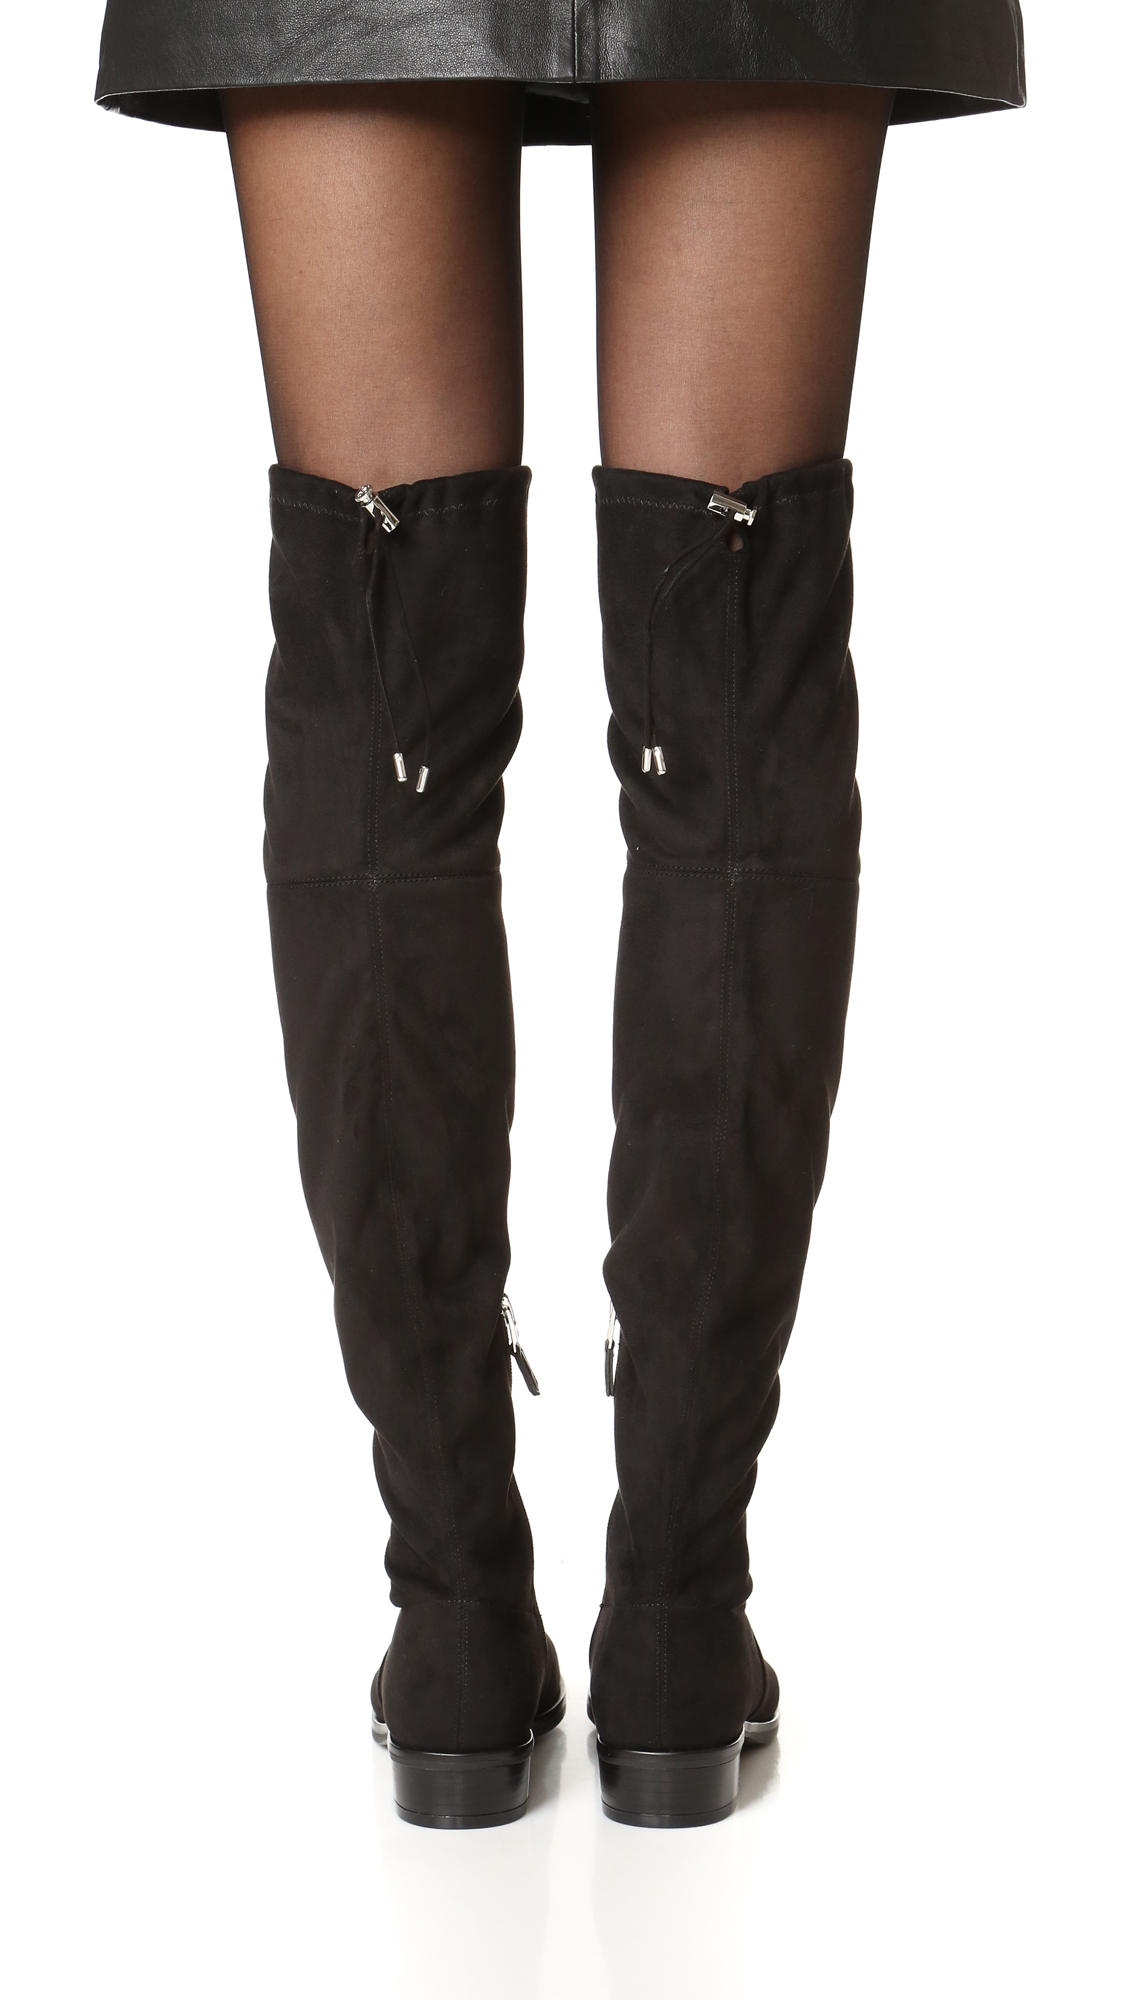 58b589f309a61 Sam Edelman Paloma Over the Knee Boots